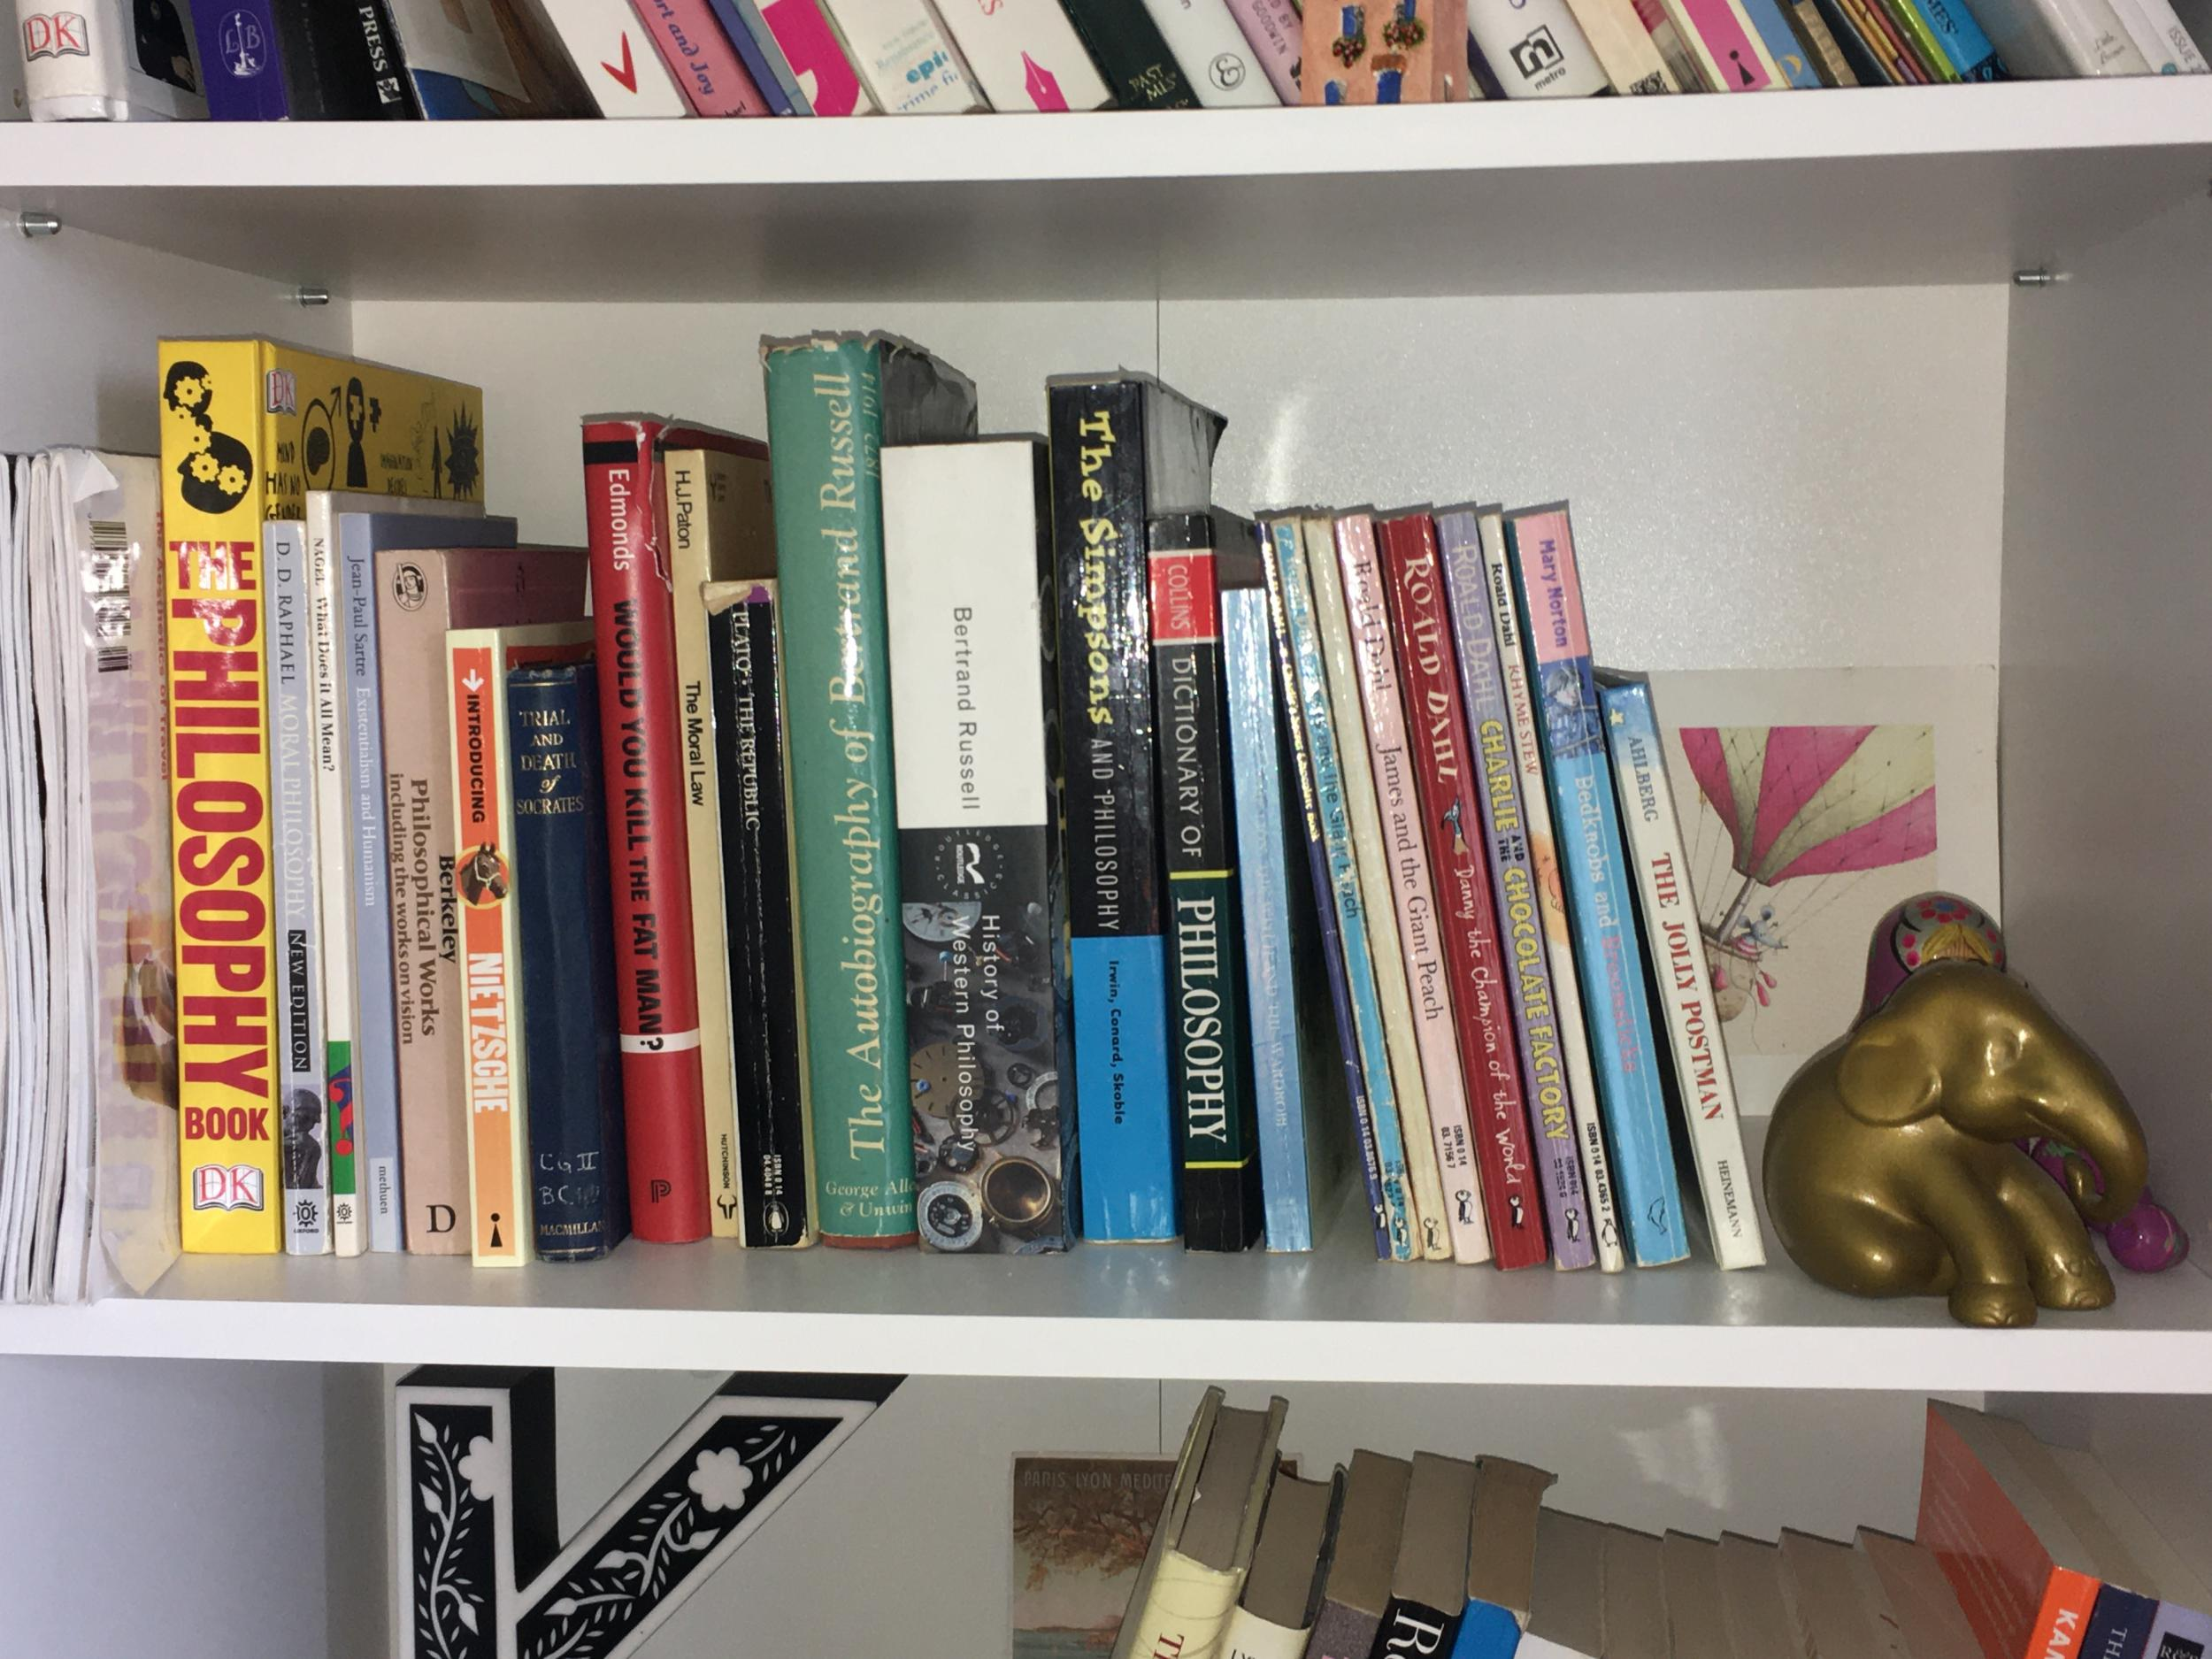 Opinion: My bookshelves are full of children's literature. They teach me lessons, and inspire joy